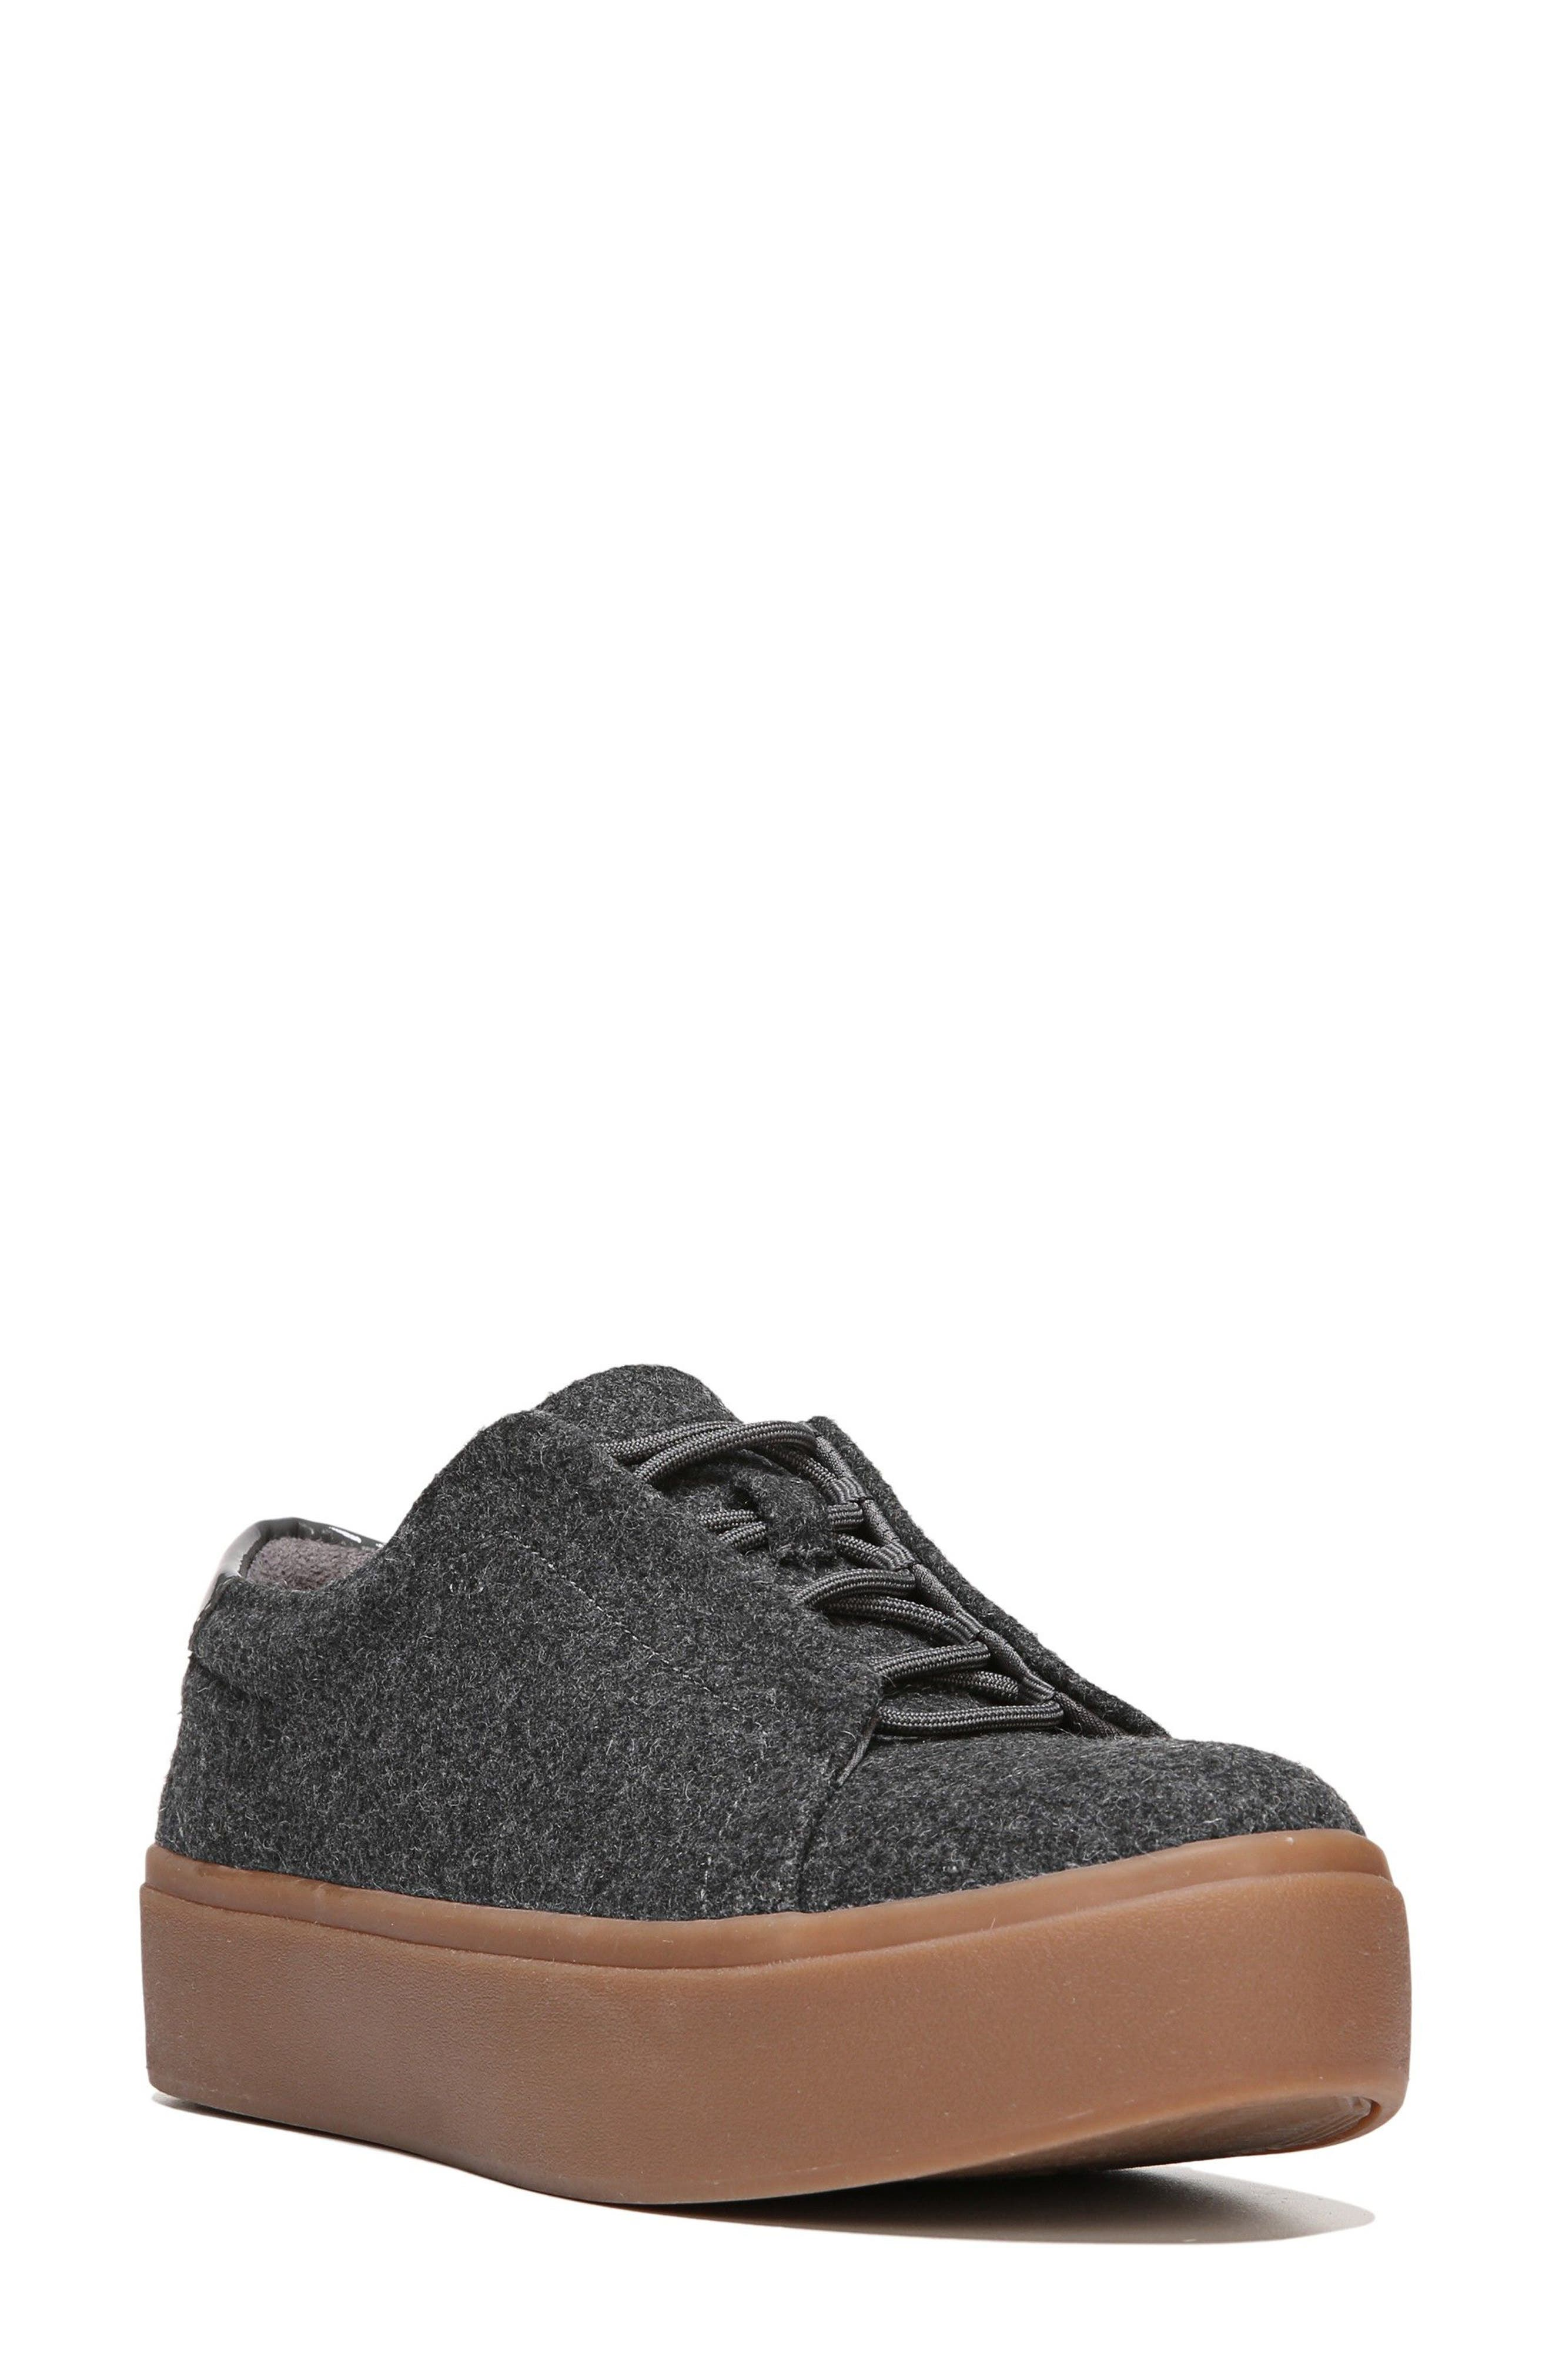 Abbot Sneaker,                             Main thumbnail 1, color,